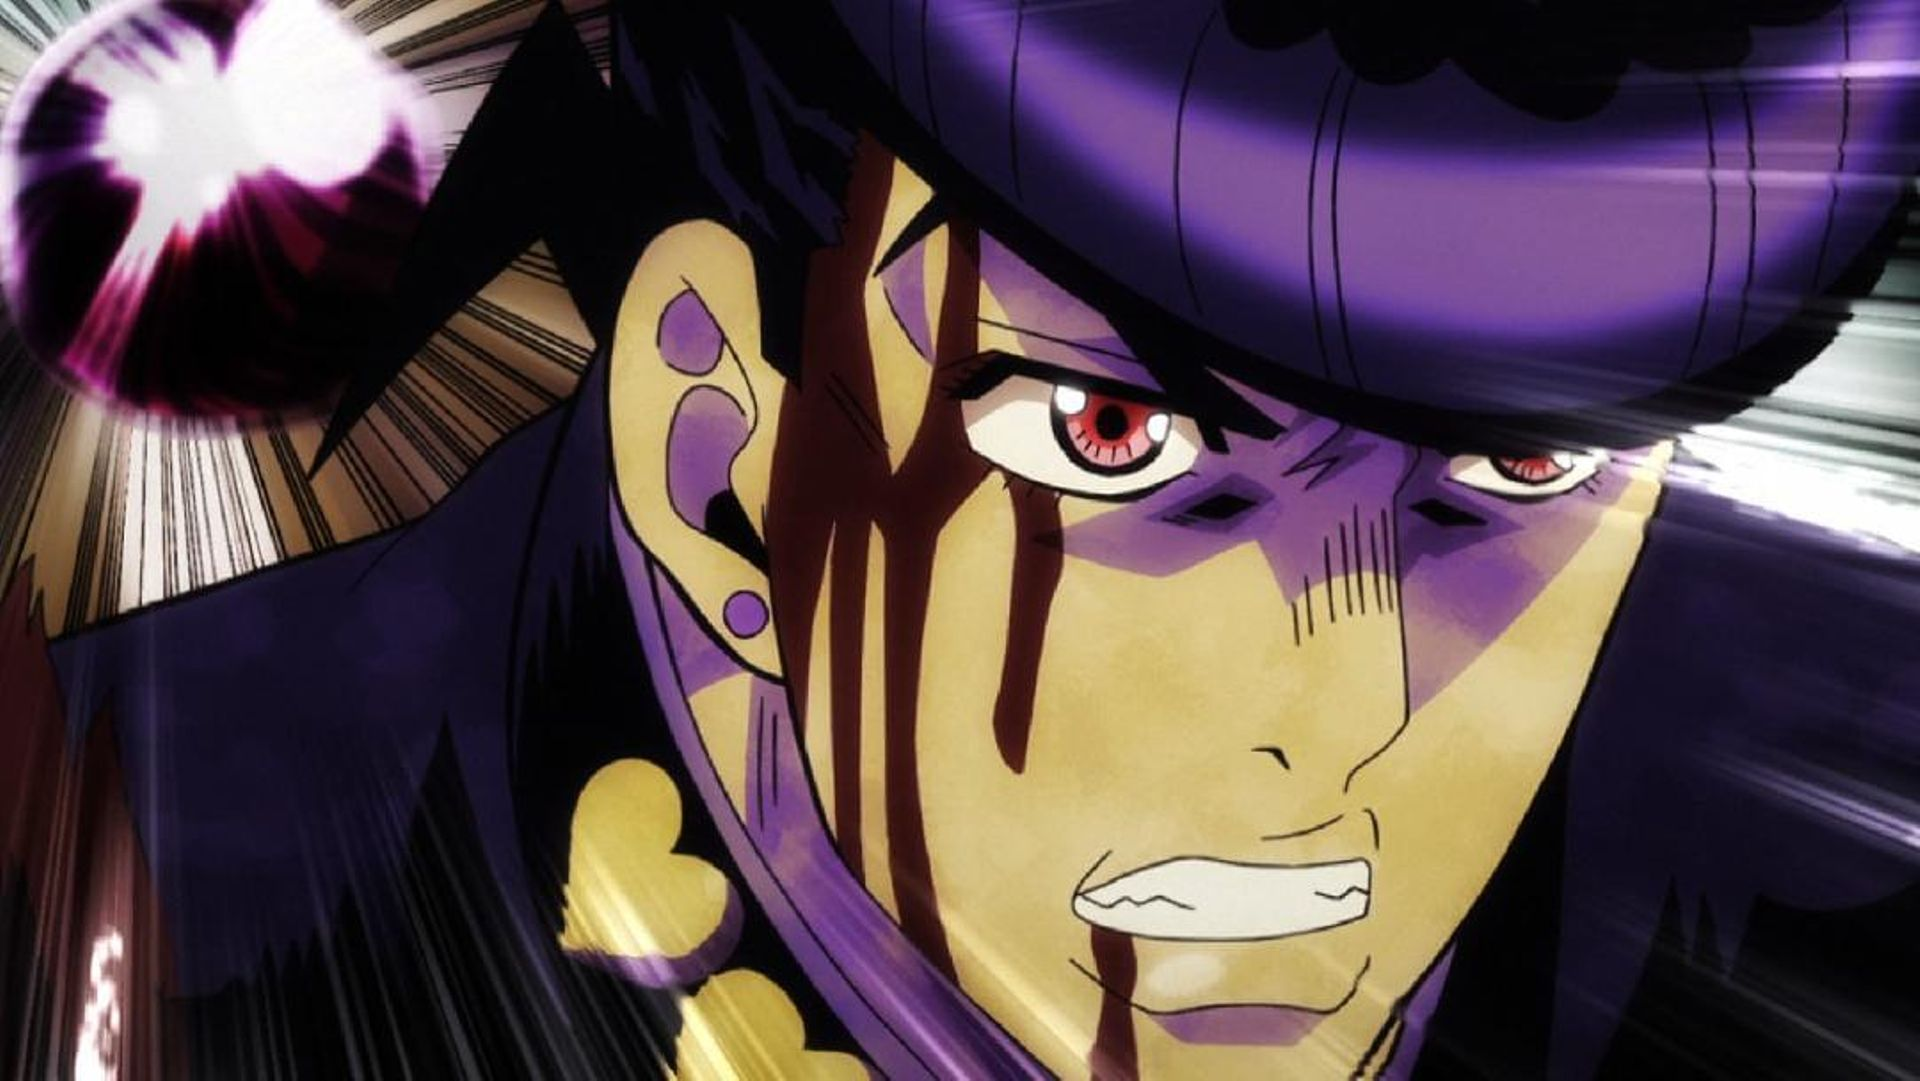 Watch JoJo's Bizarre Adventure on Adult Swim